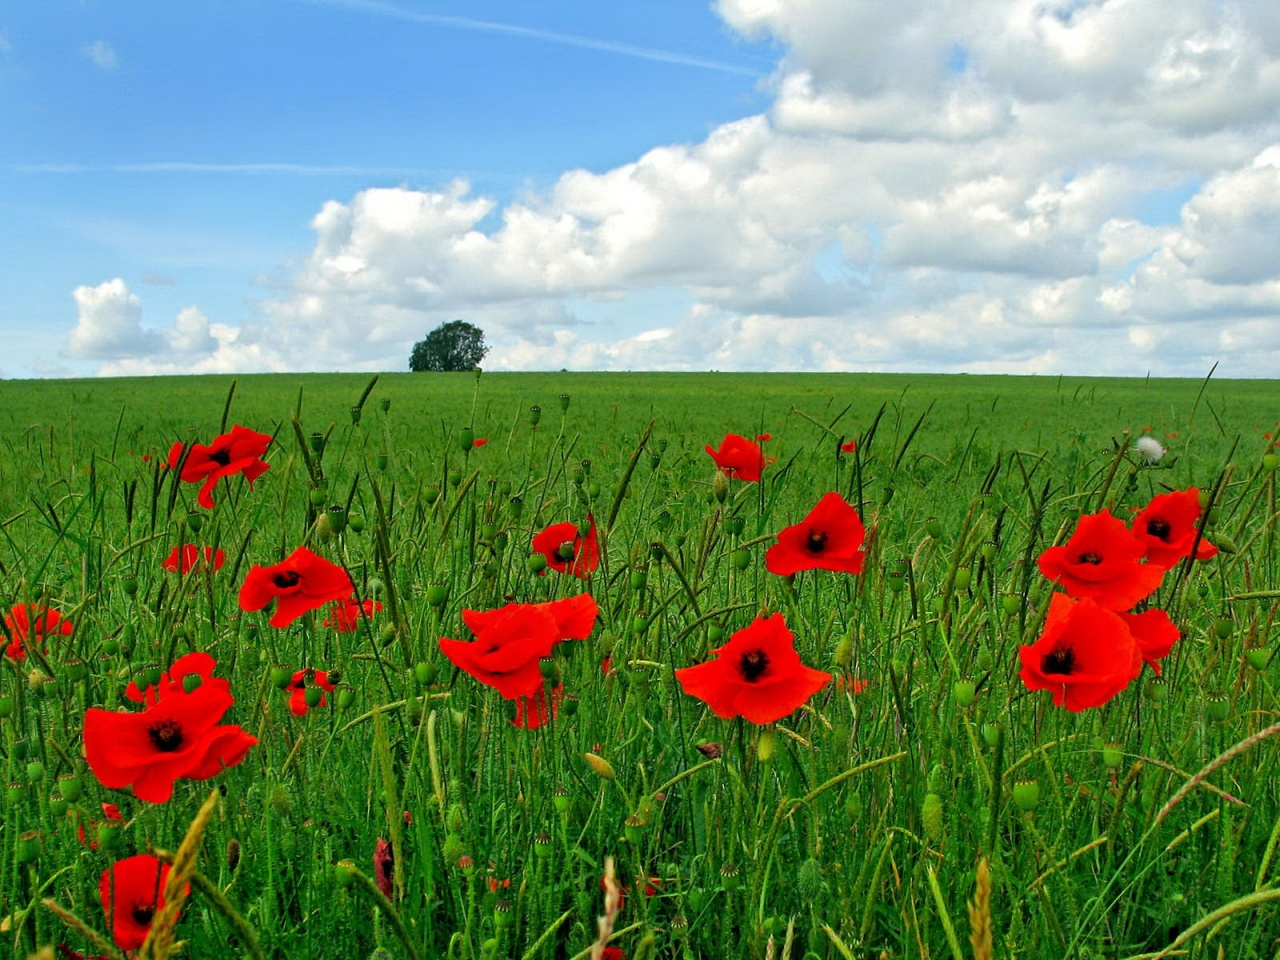 1280x720 Poppy flowers on field